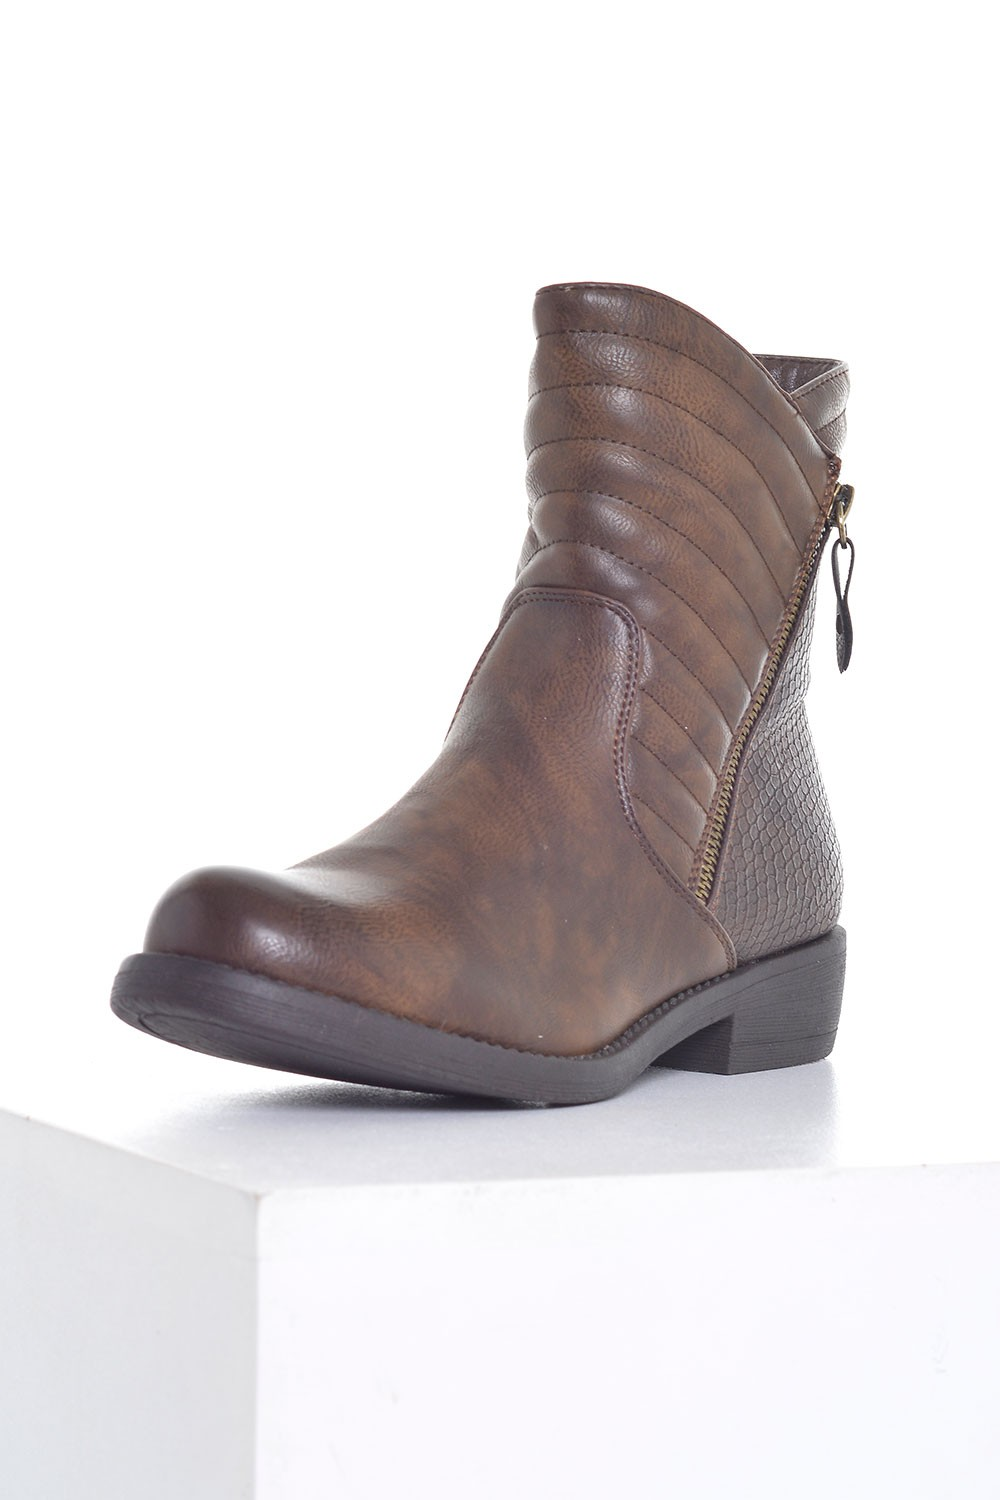 season d niamh fur lined boots in brown iclothing